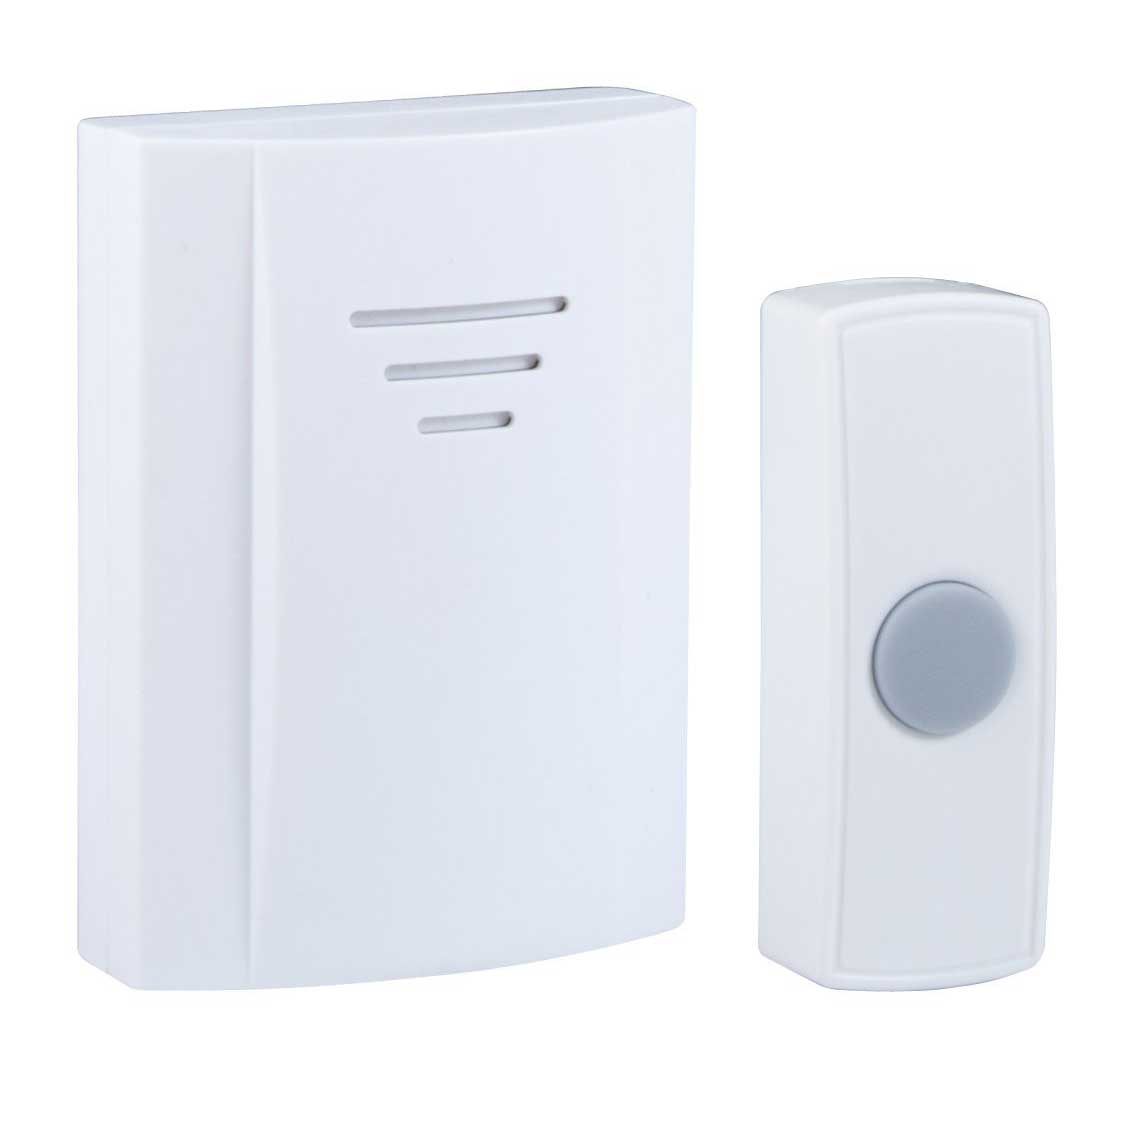 Byron B304 50m Wireless Portable Door Chime Kit With 2